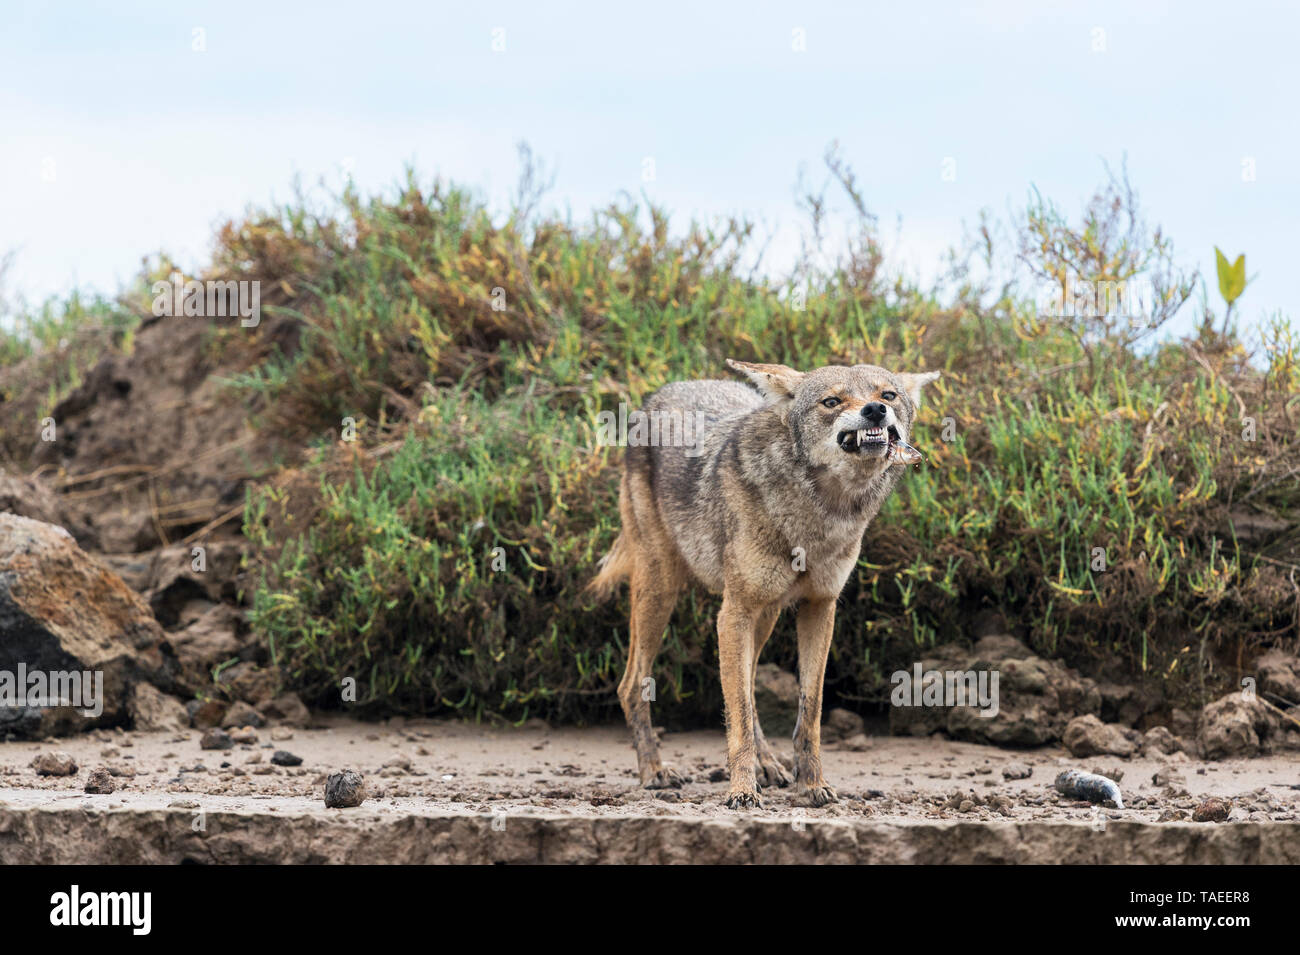 Coyote (Canis latrans), Baja California. Mexico. - Stock Image